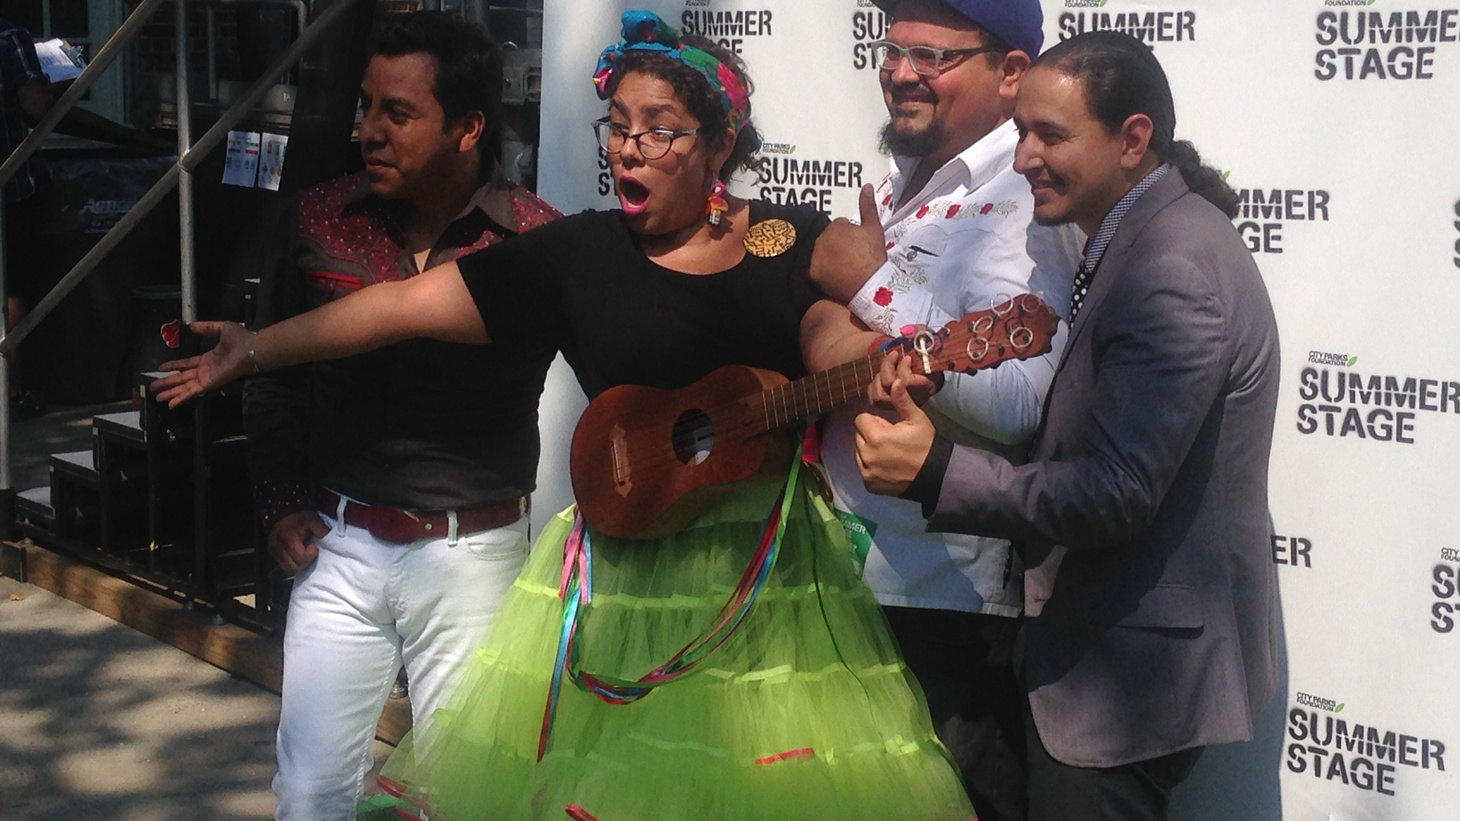 L.A. was representin' in Nueva York at the Latin Alternative Music Conference with one of our favorite home-grown bands — the signature party sound of La Santa Cecilia.